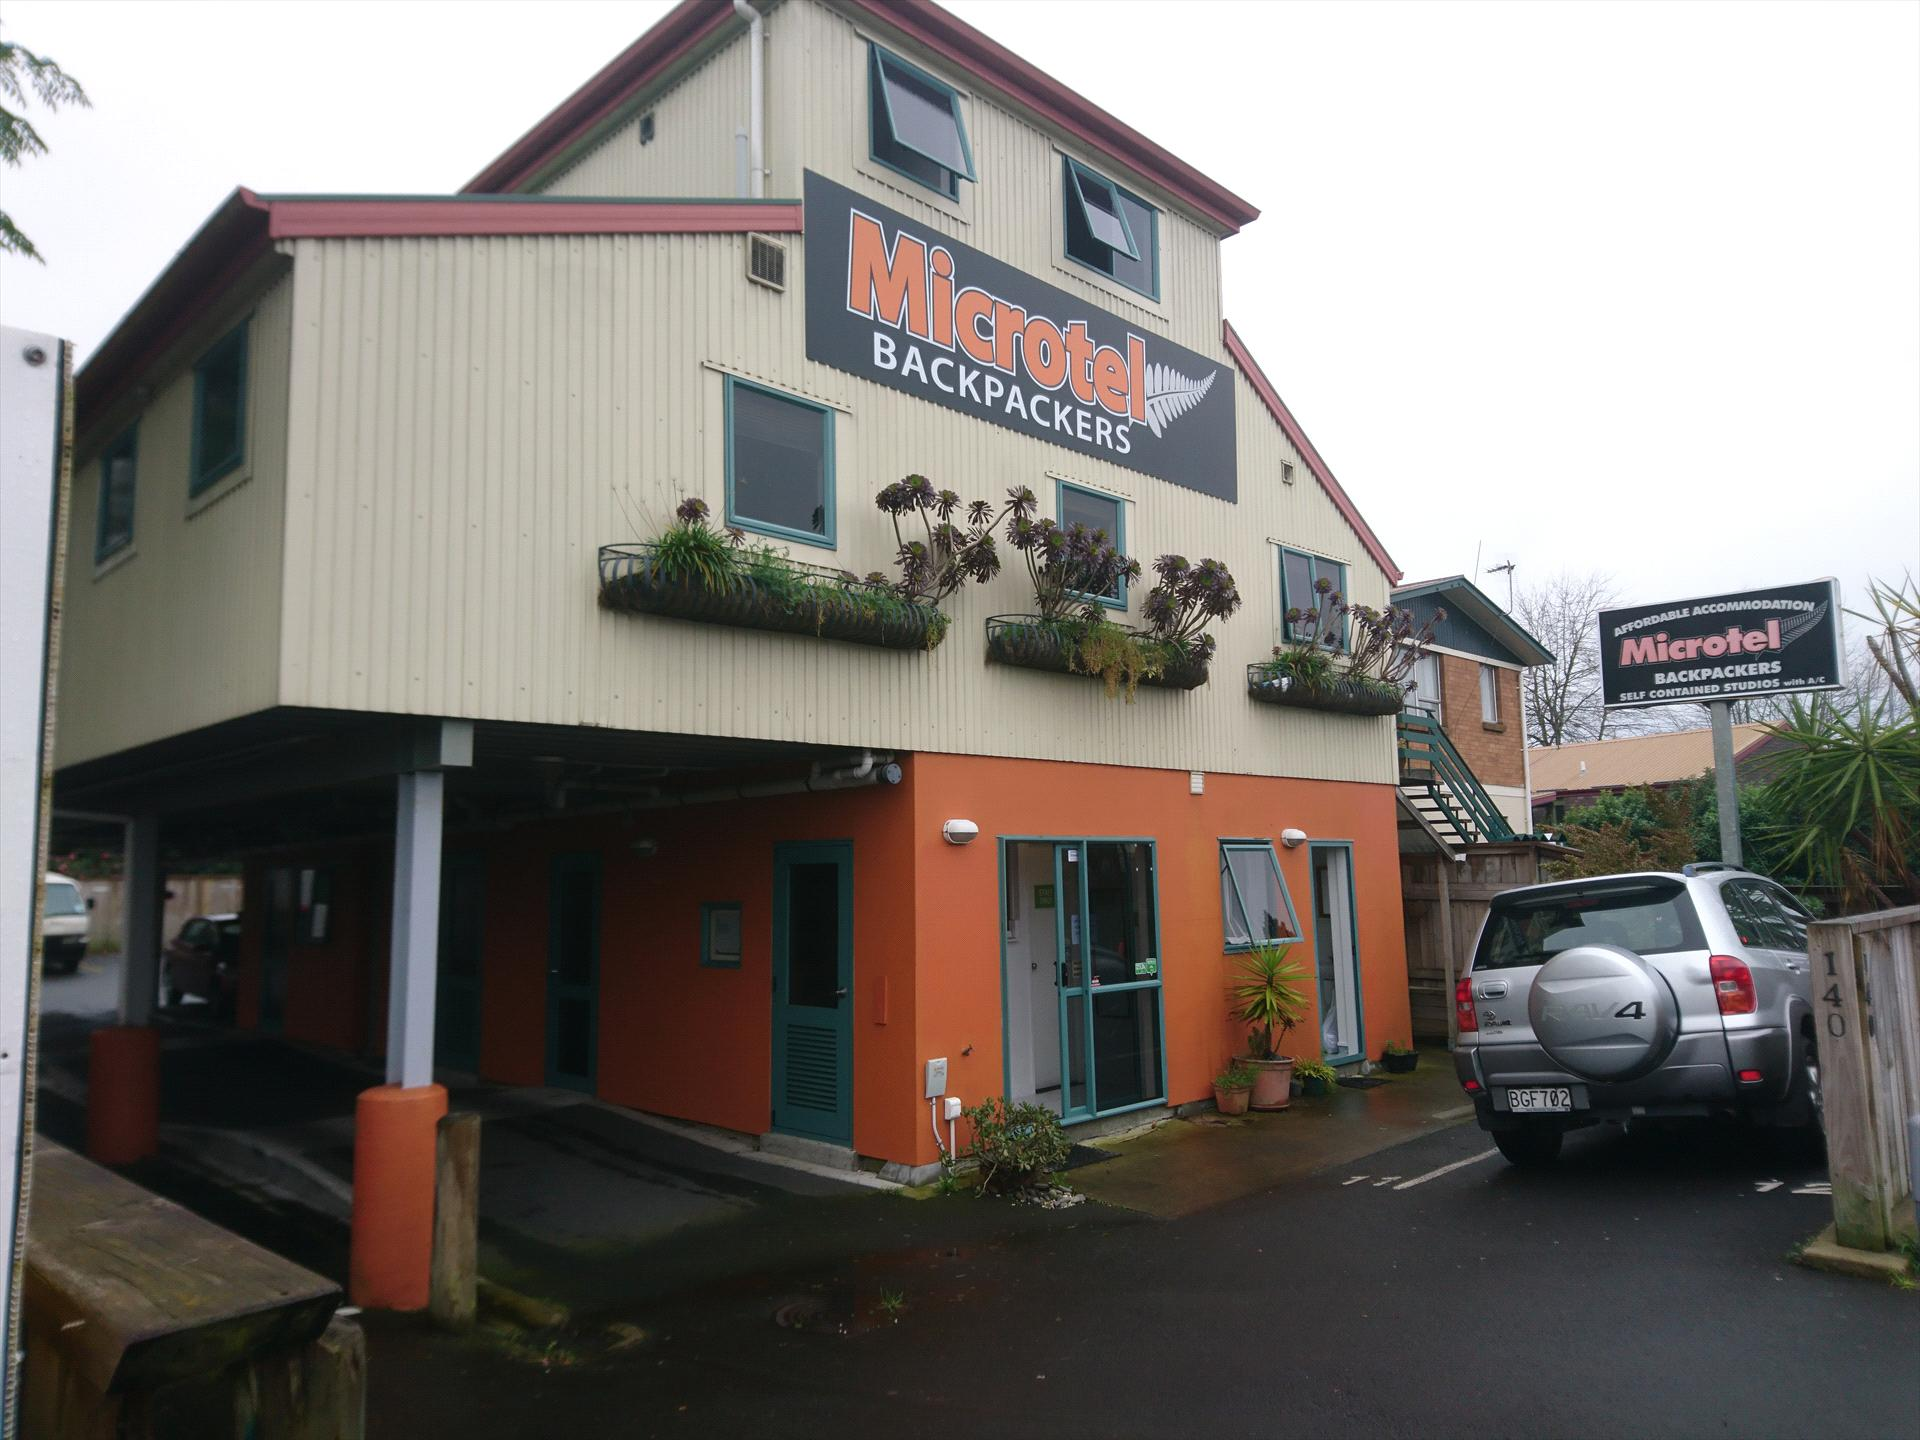 Microtel Backpackers Hamilton